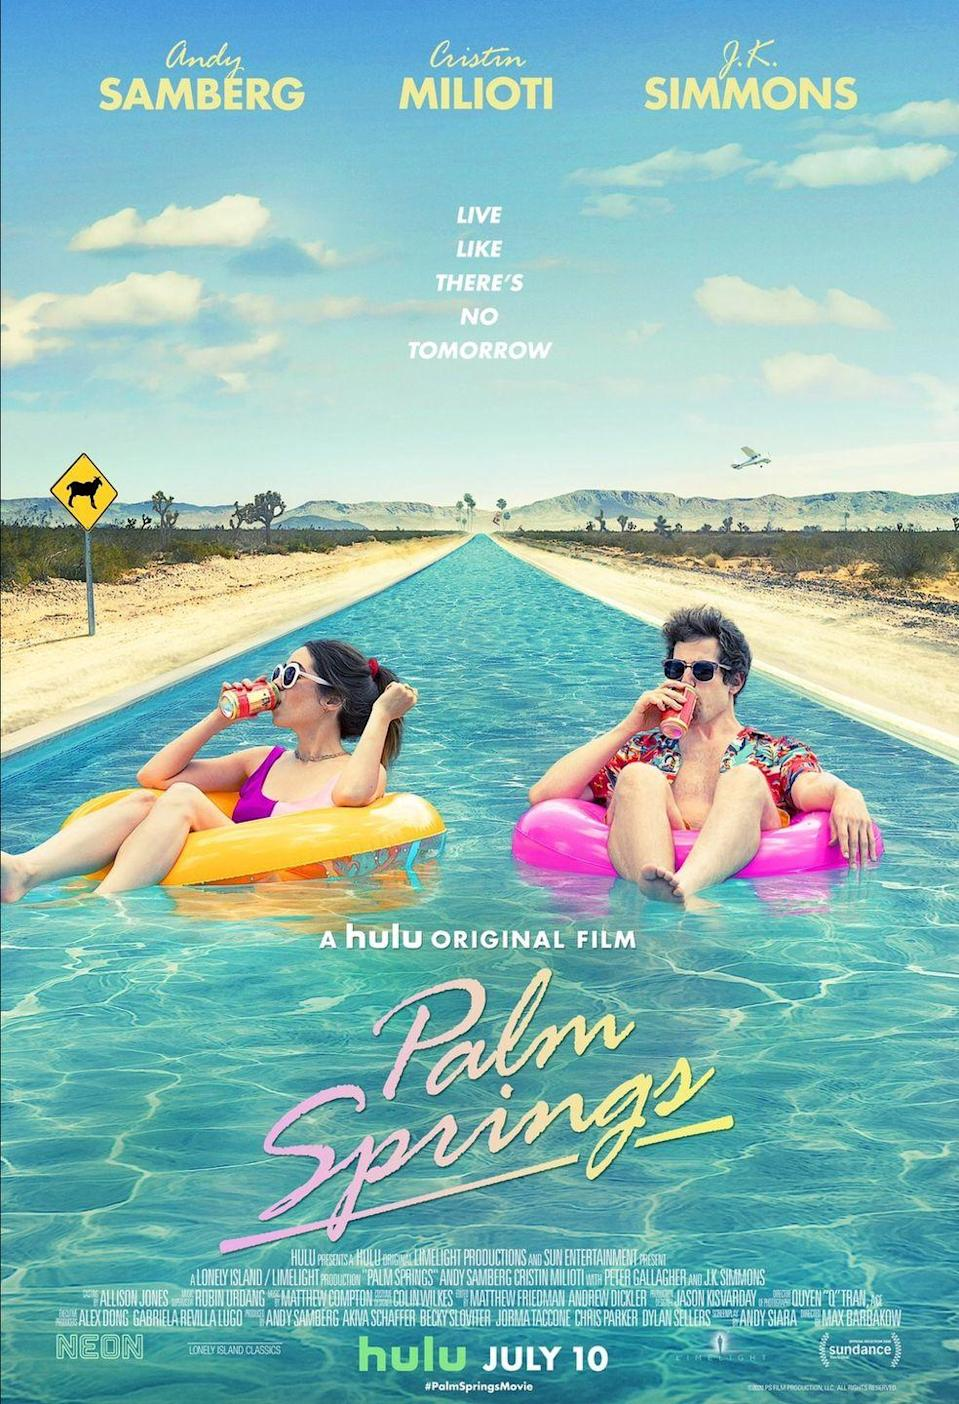 <p><strong>The twist was physics books and studying during a destination wedding? </strong></p><p>Hulu's buzziest original film release, <em>Palm Springs</em><em>,</em> at first seemed like a fresh take on a <em>Groundhog Day</em> concept: waking up every morning only to live through the same exact day again, and again, and again. There are sci-fi flourishes, thanks to the time-loop cave where Nyles (Andy Samberg) tries to stop Sarah (Cristin Milioti) from following him into. Of course, she doesn't listen and gets stuck in the loop with him. </p><p>To break the loop, Sarah gets a bunch of physics textbooks (she doesn't live in Palm Spring but is there for a wedding), studies every day, and suddenly understands exactly how to escape the time loop. Though her plan is successful, it was underwhelming and unrealistic that someone with no science background could just pore over textbooks to unlock the mysteries of traveling through time.</p>